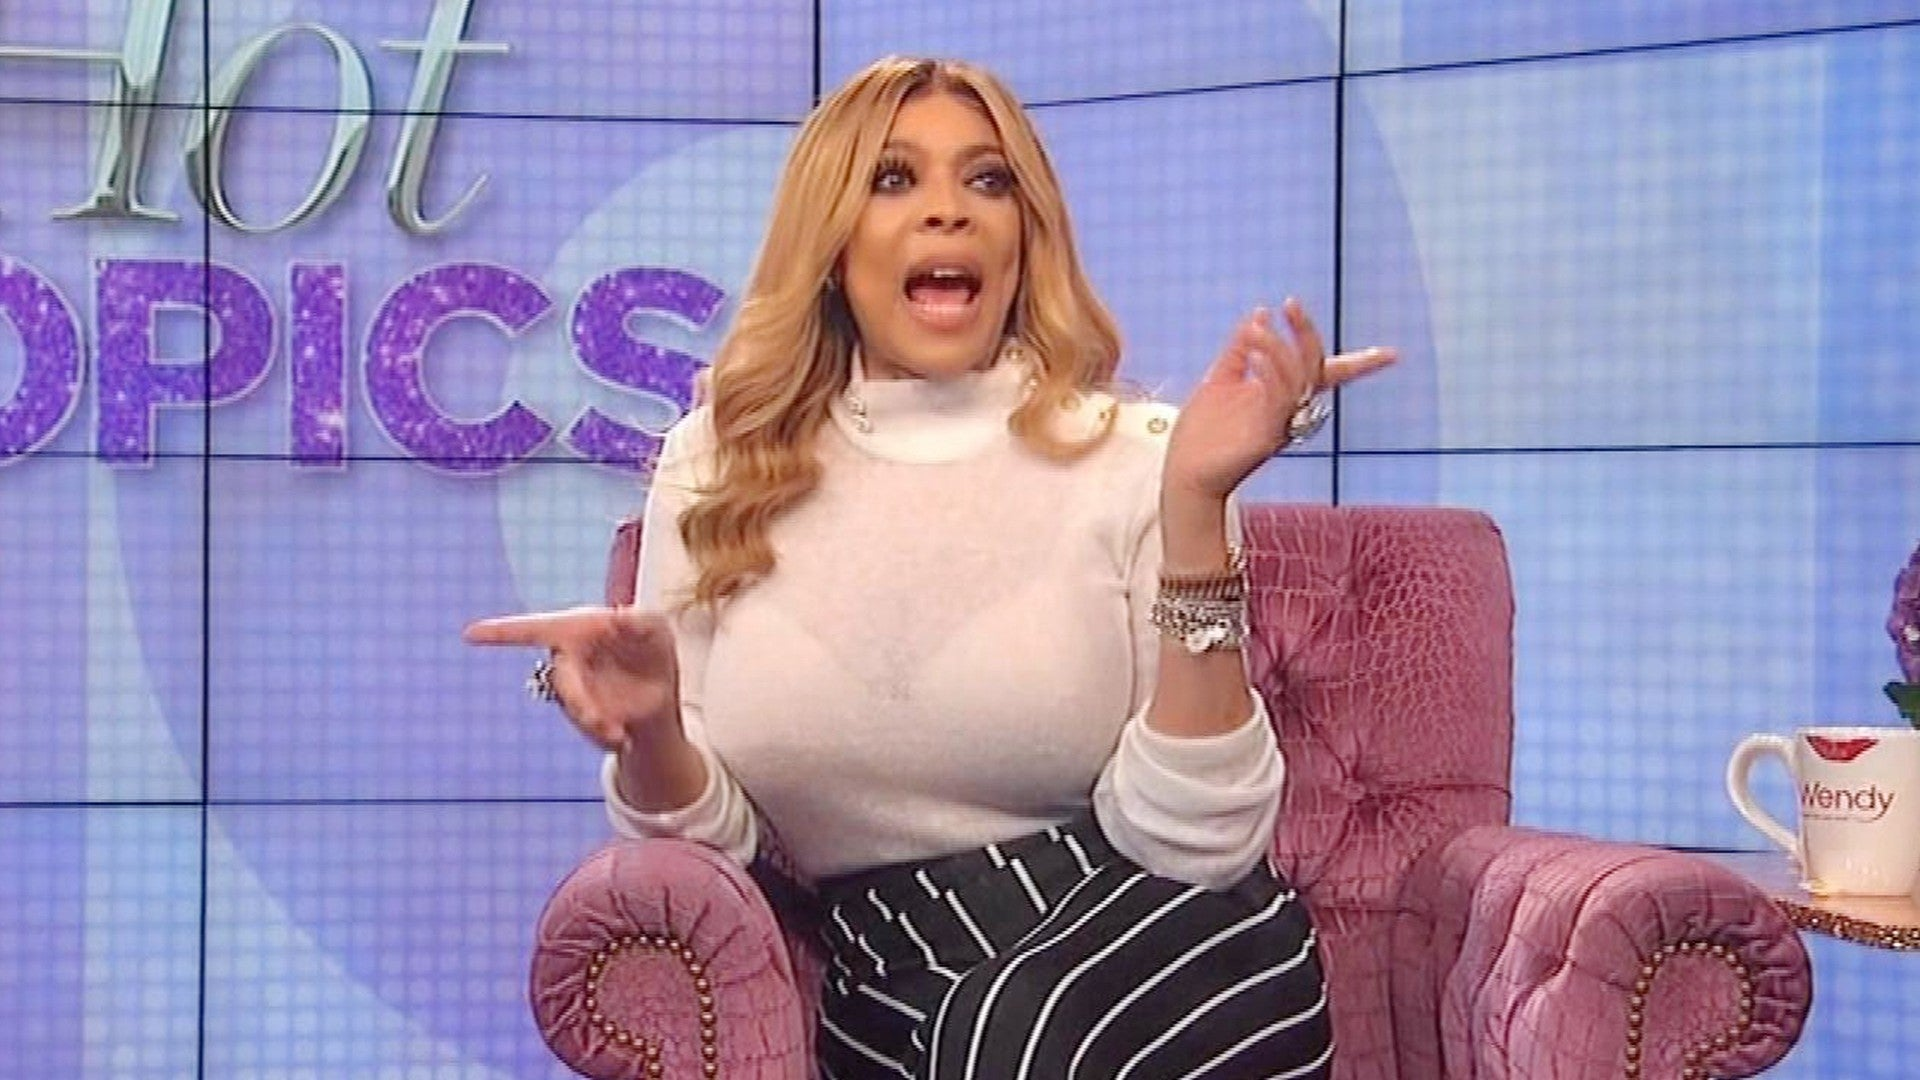 Wendy Williams Fans Are Worried After Her Friday Morning Show ...